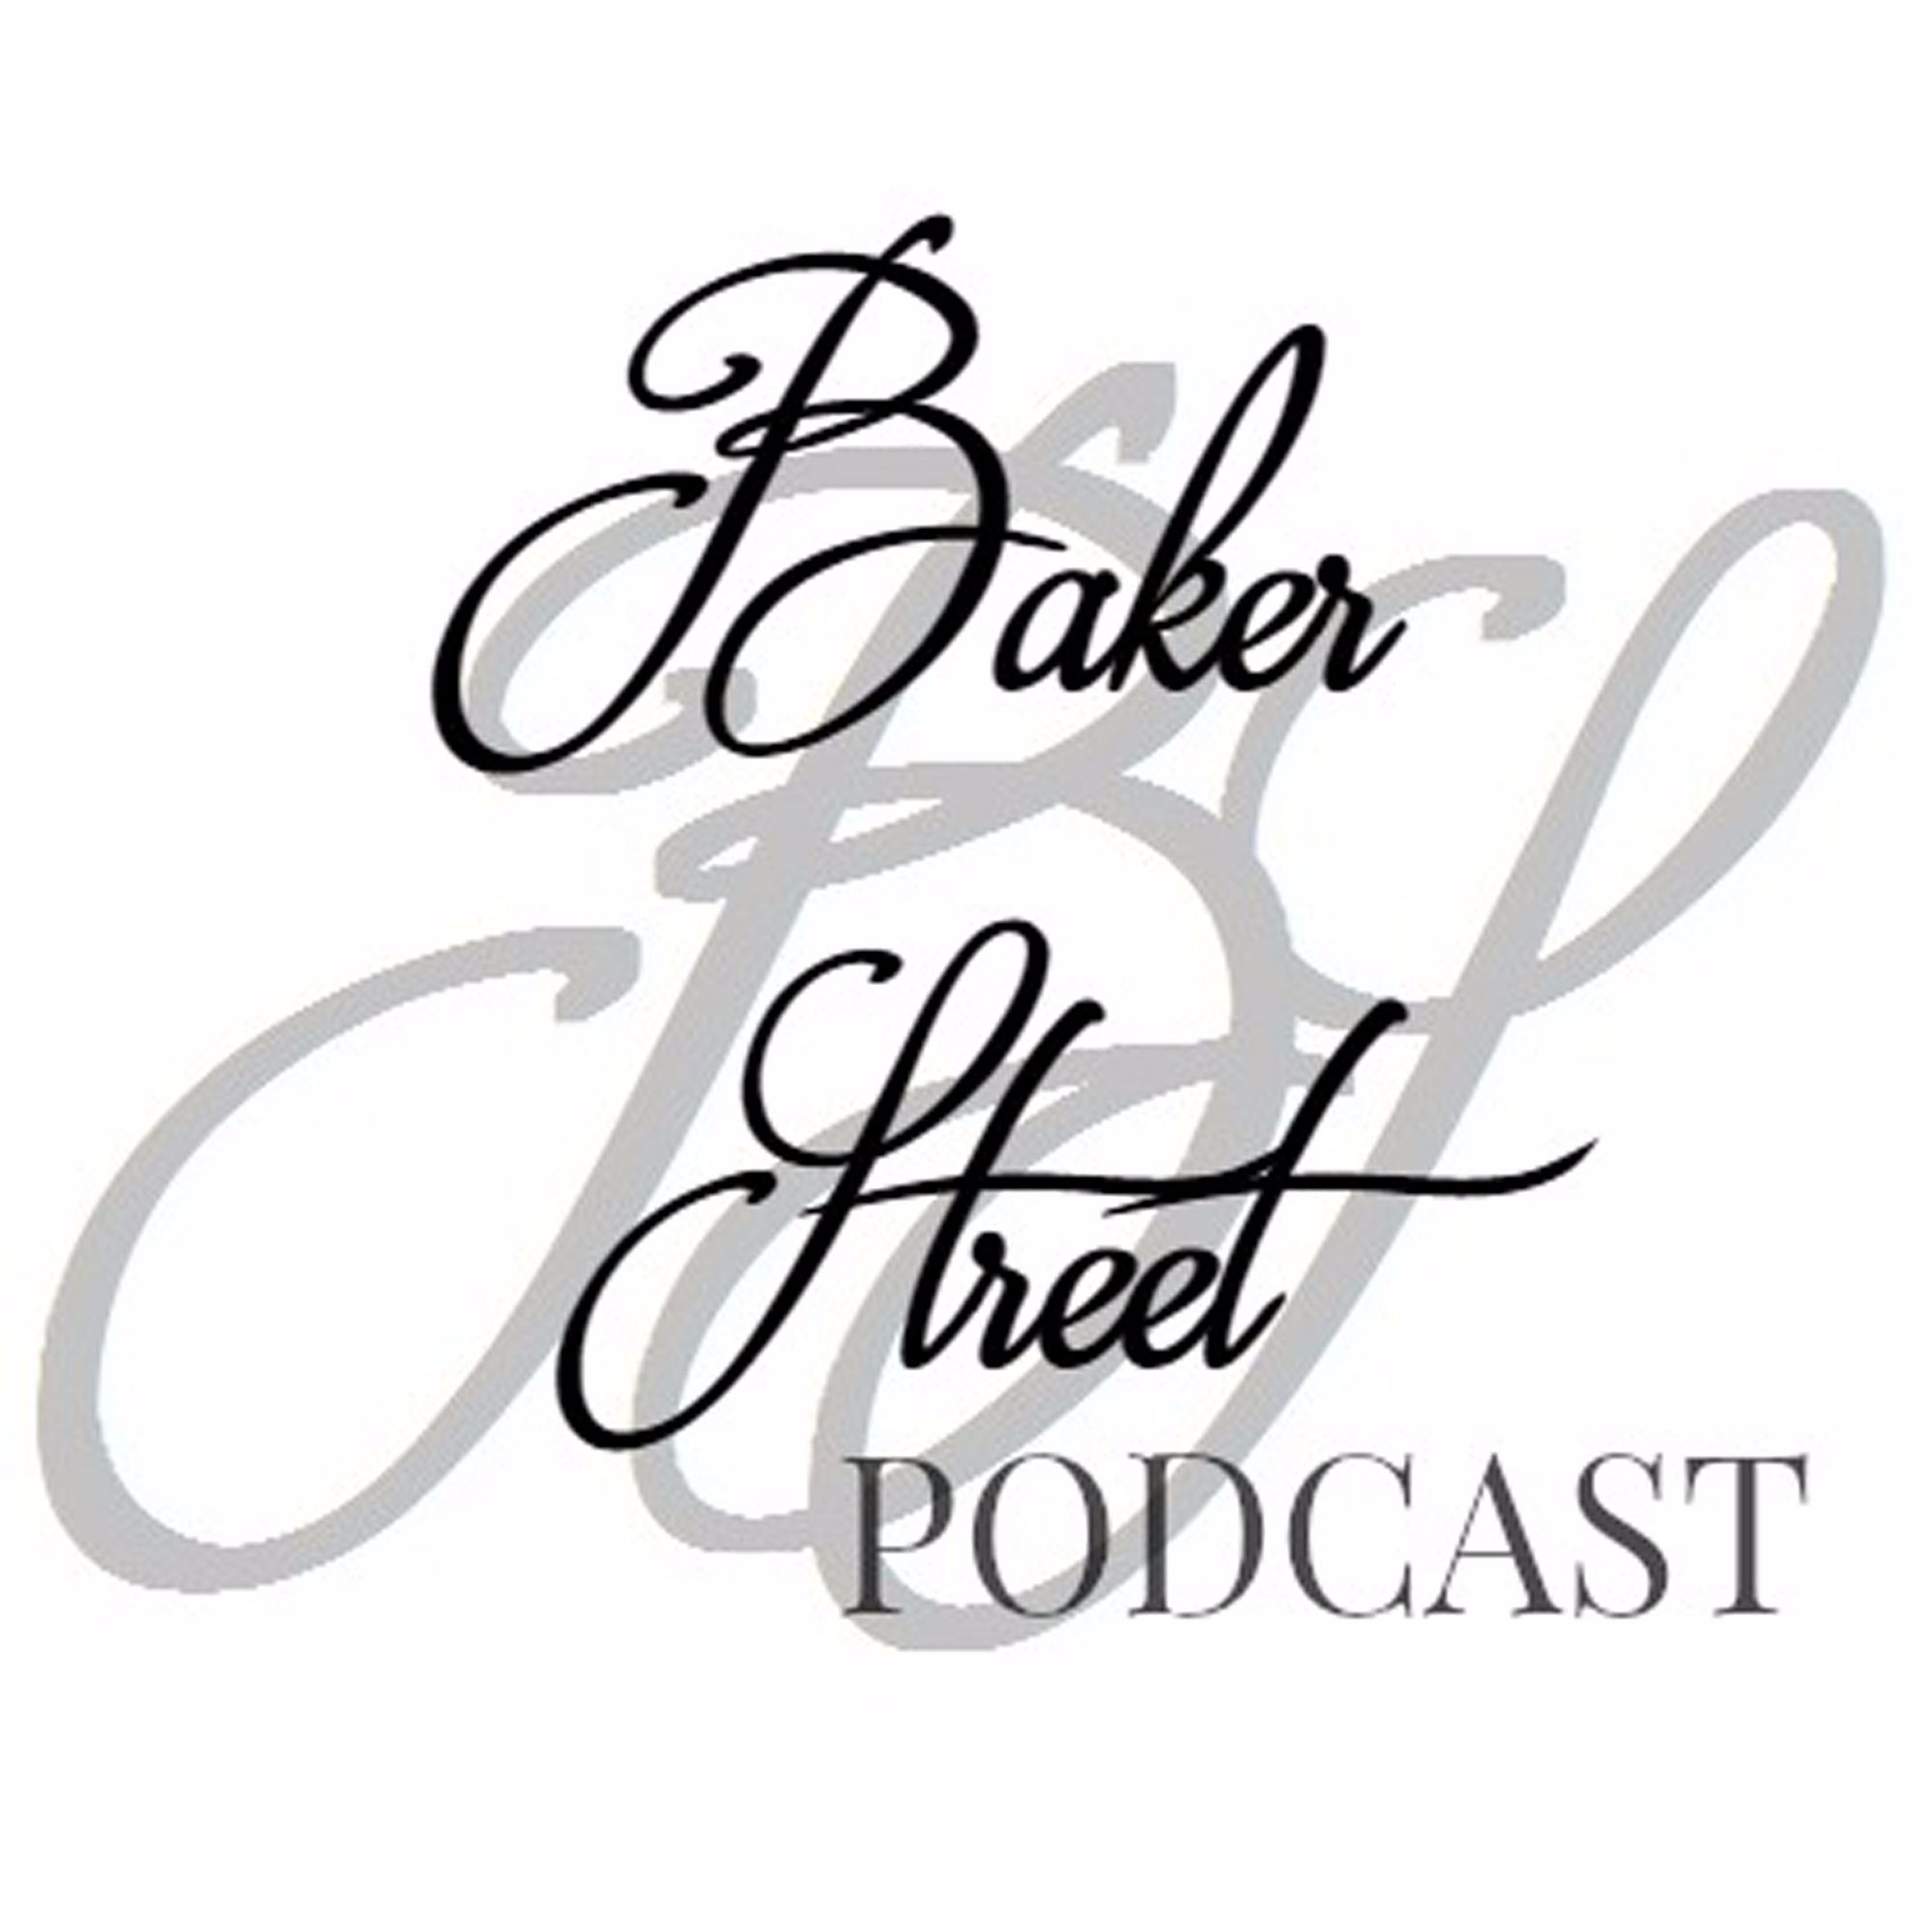 Baker Street Podcast